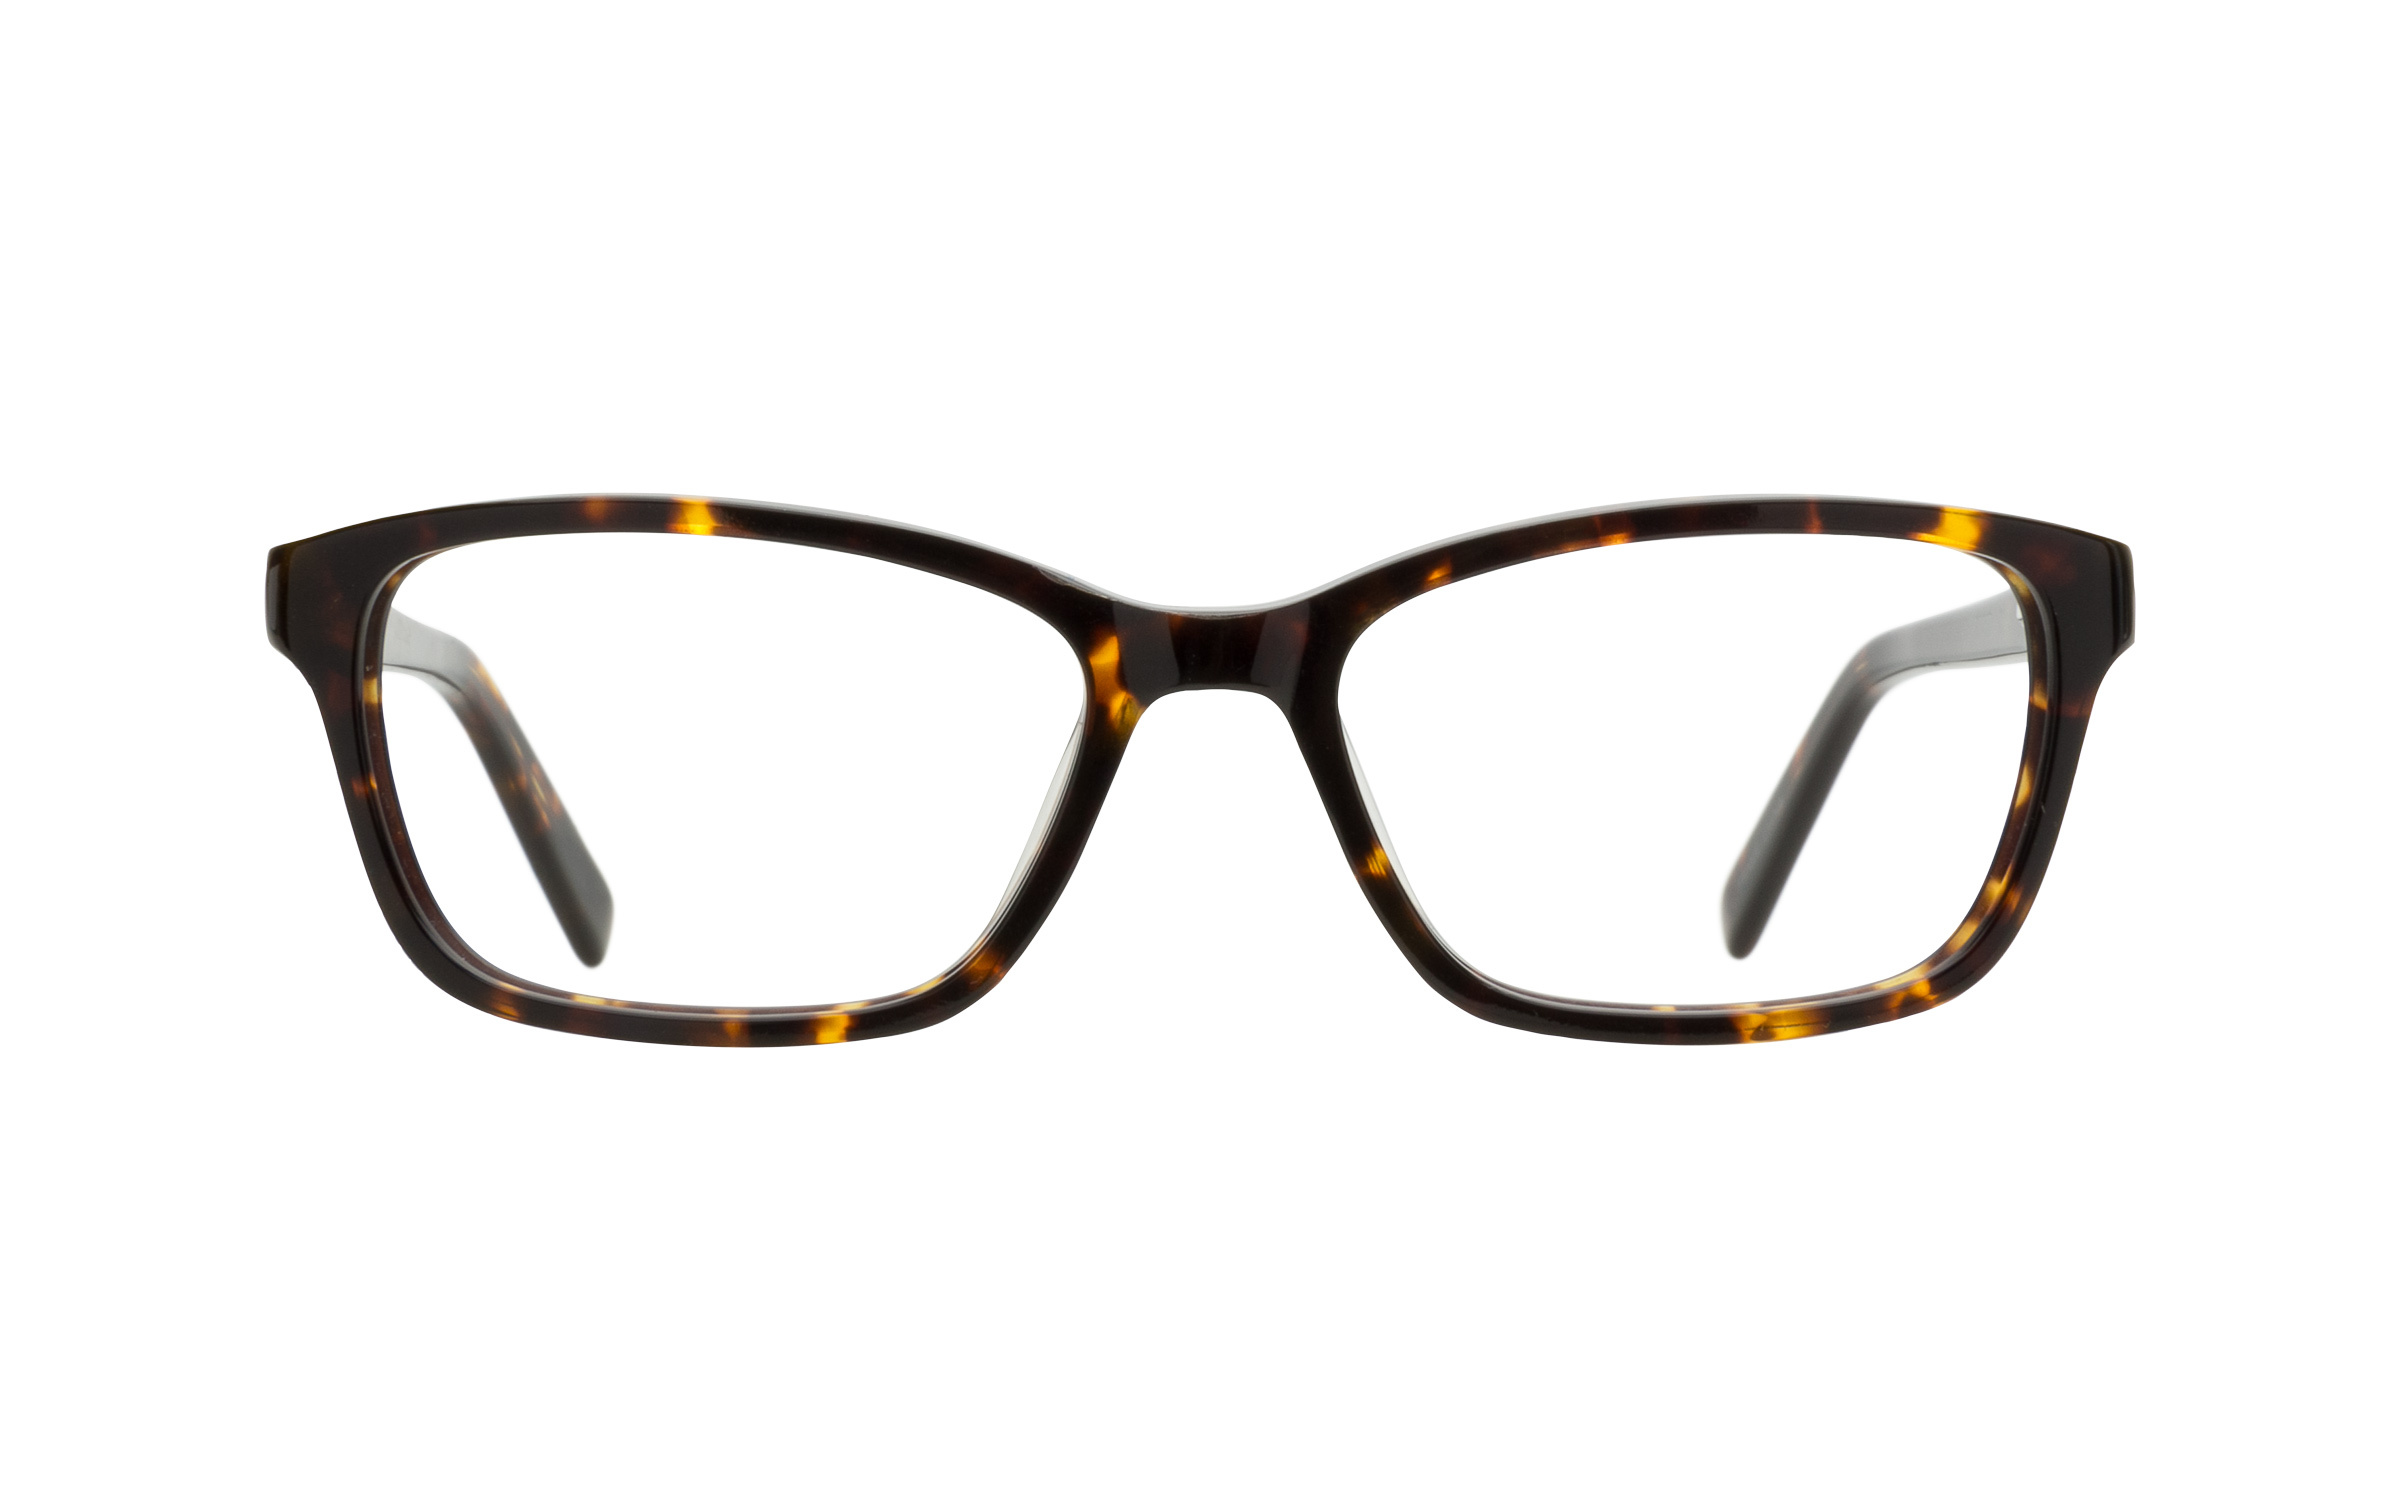 7 for All Mankind Glasses Round Tortoise Acetate Online Clearly